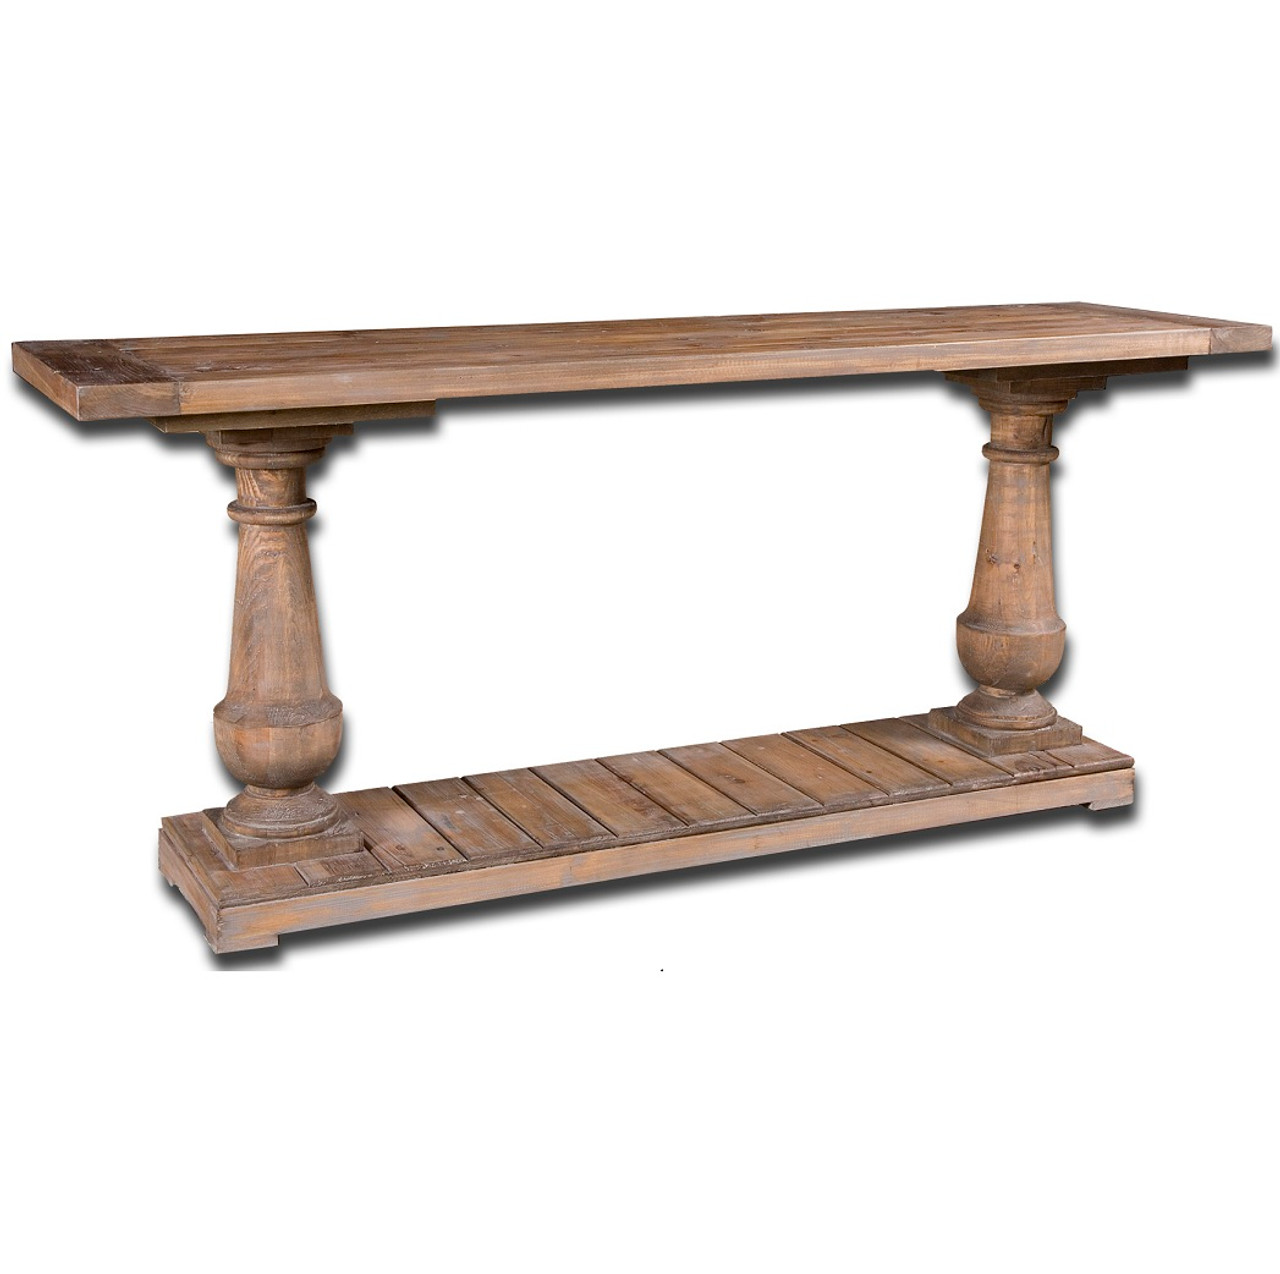 Salvaged solid wood rustic console table 71 zin home for Sofa table 48 inches